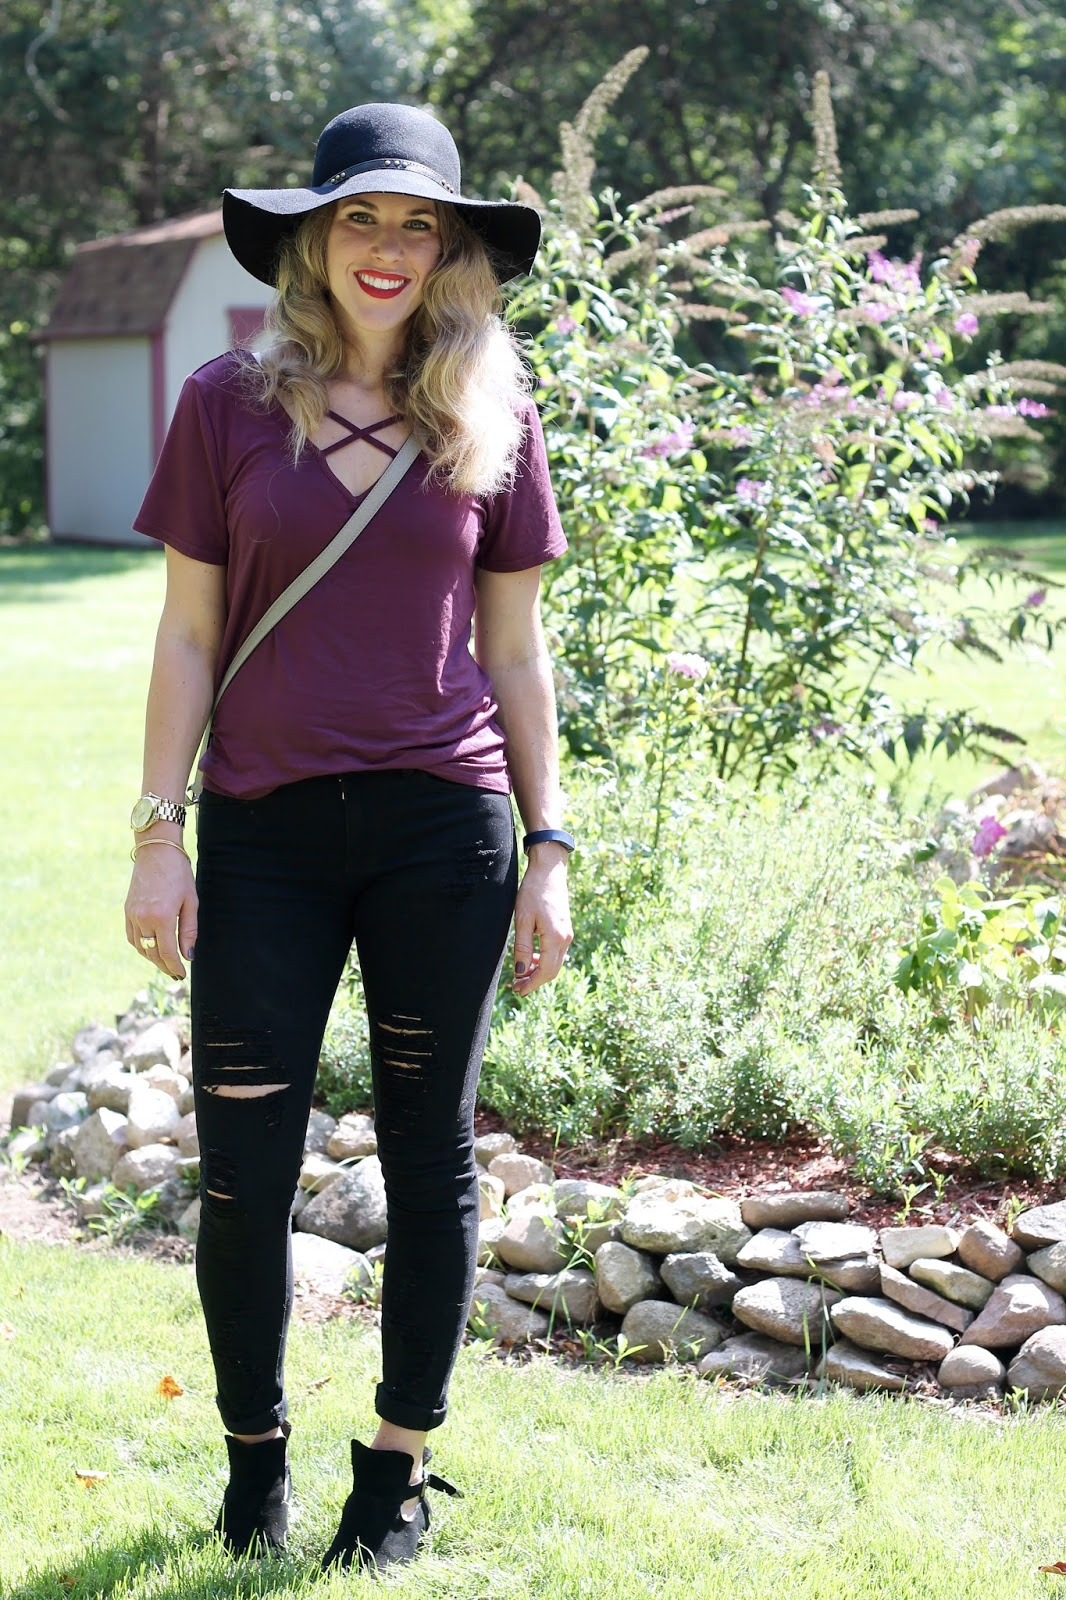 burgundy criss cross top, distressed black jeans, black booties, black floppy hat, grey saddlebag